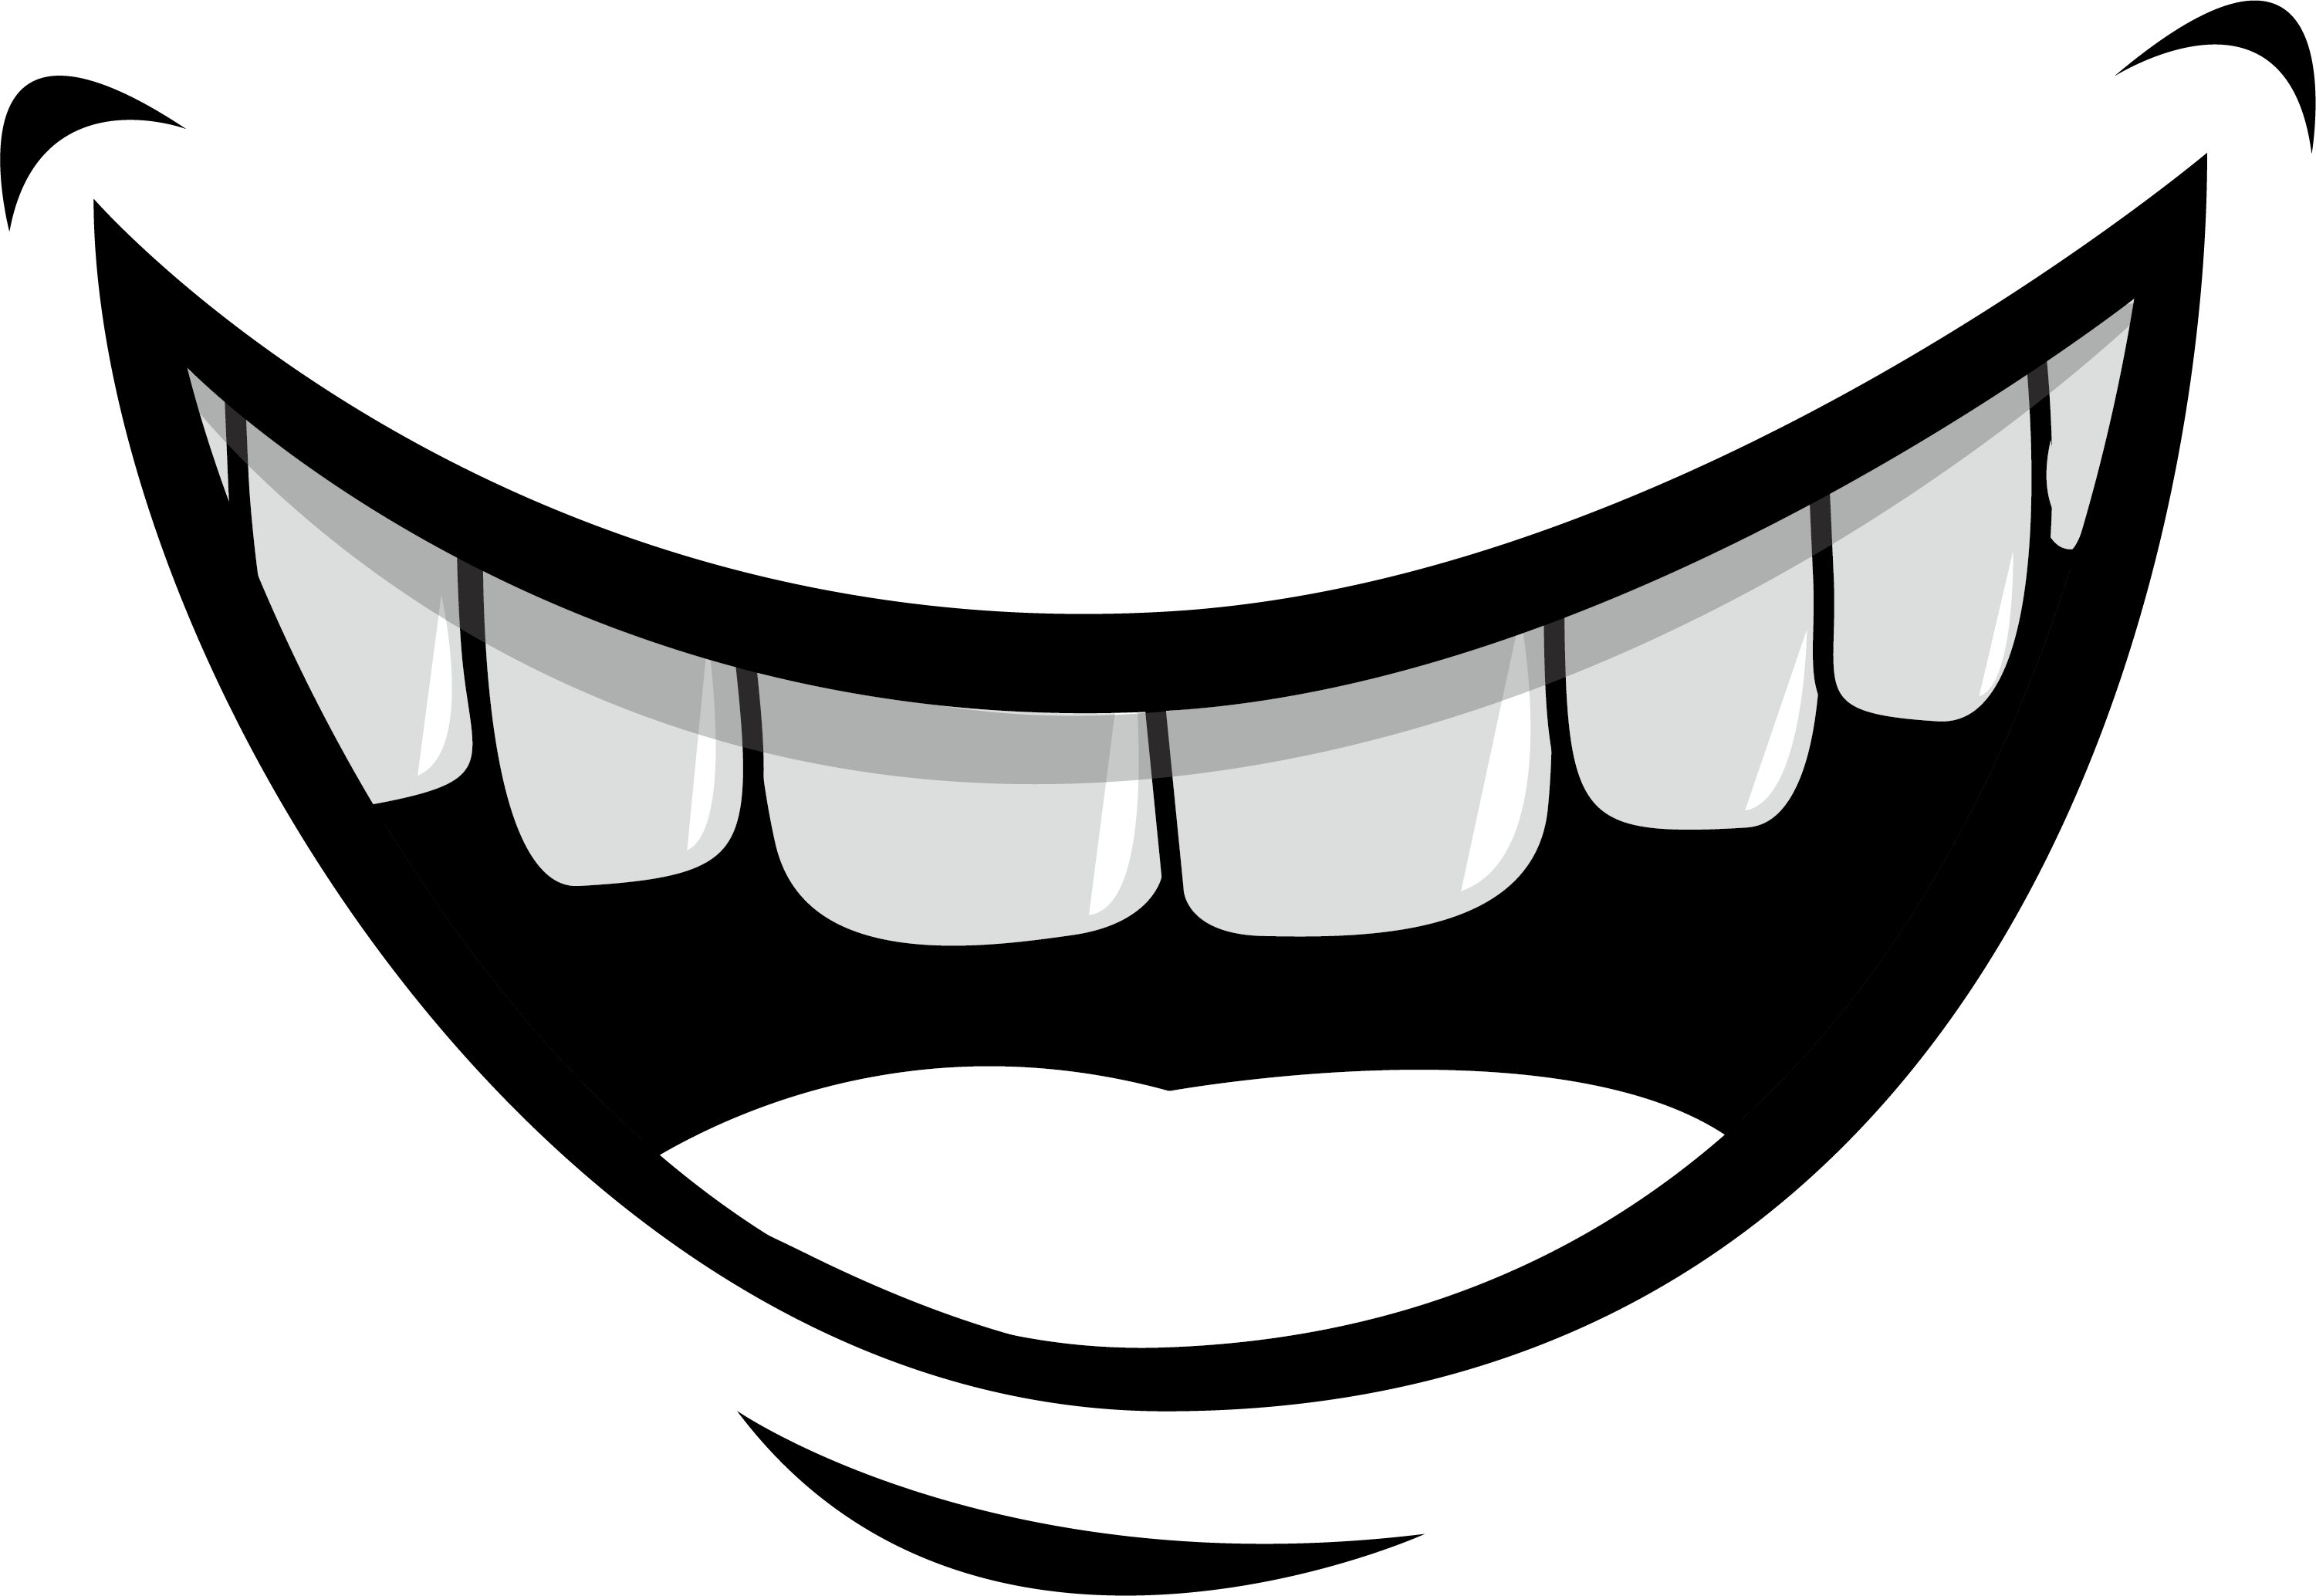 tooth clipart transparent background cartoon simple